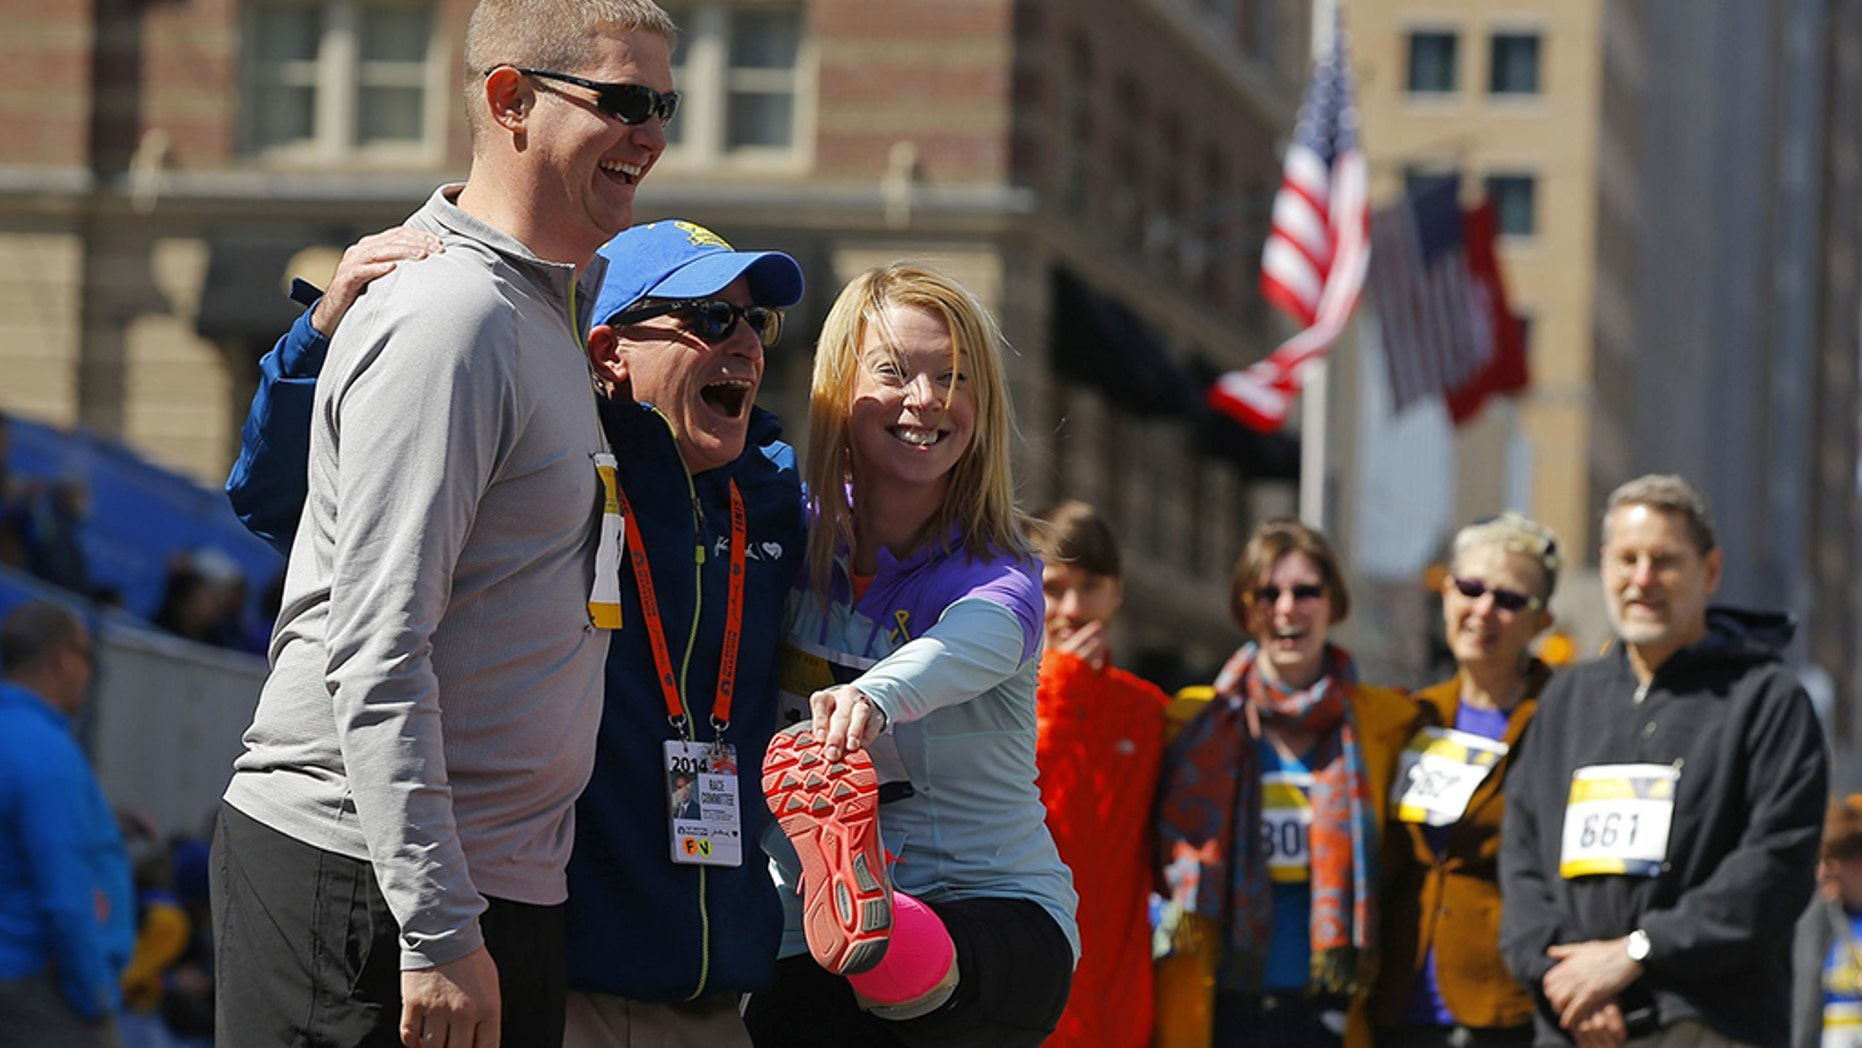 Boston Marathon Bombing Survivor 'Completely Broken' After Being Struck By Car